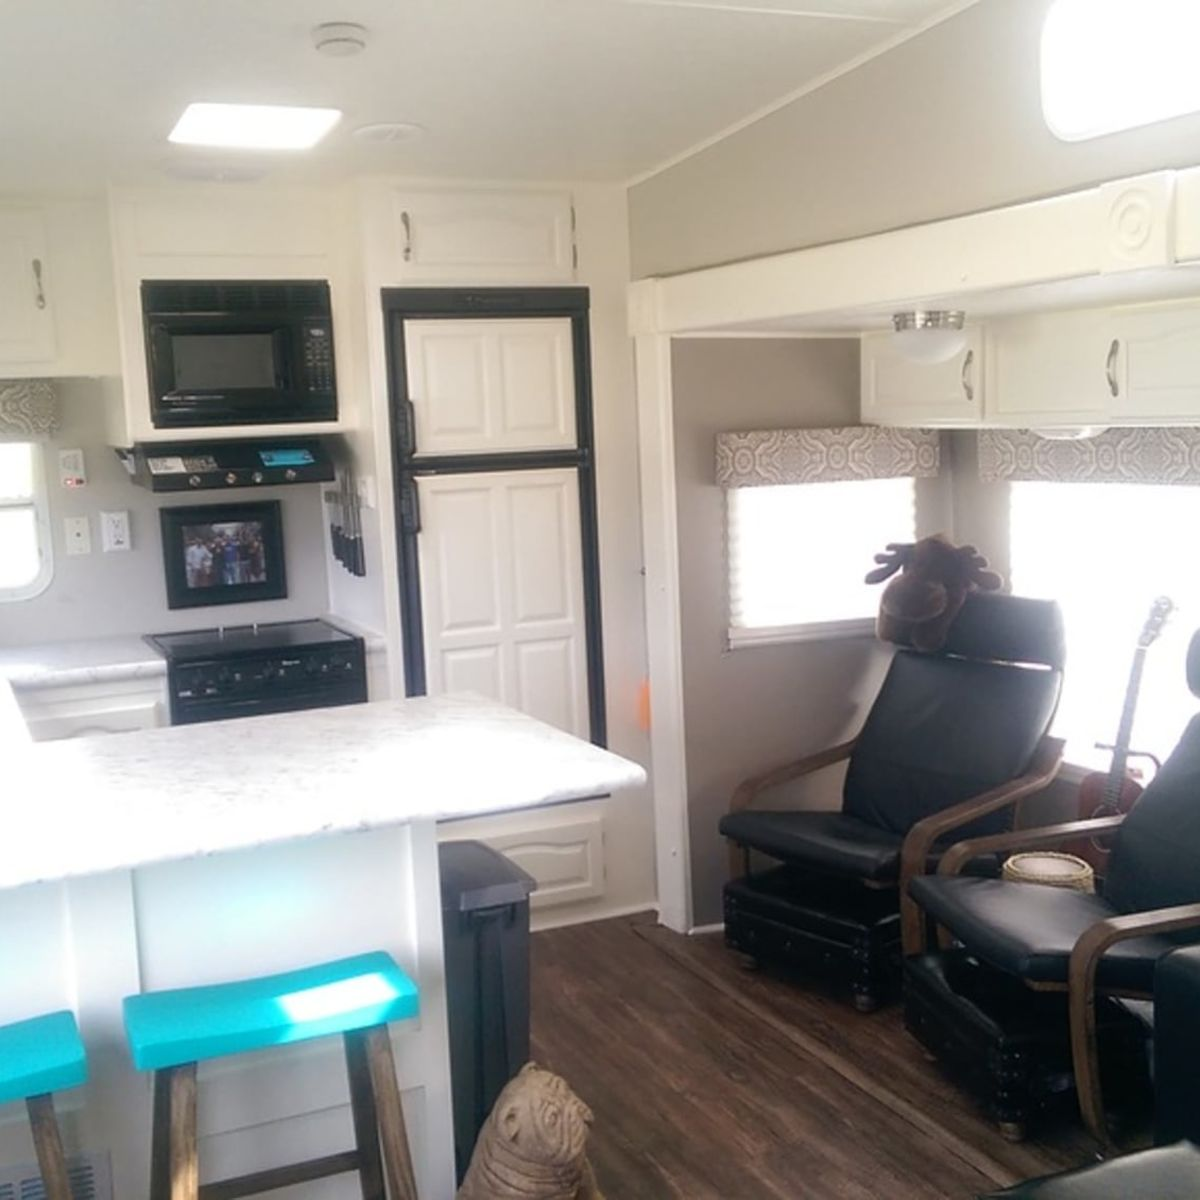 Fifth Wheel Converted To Tiny House